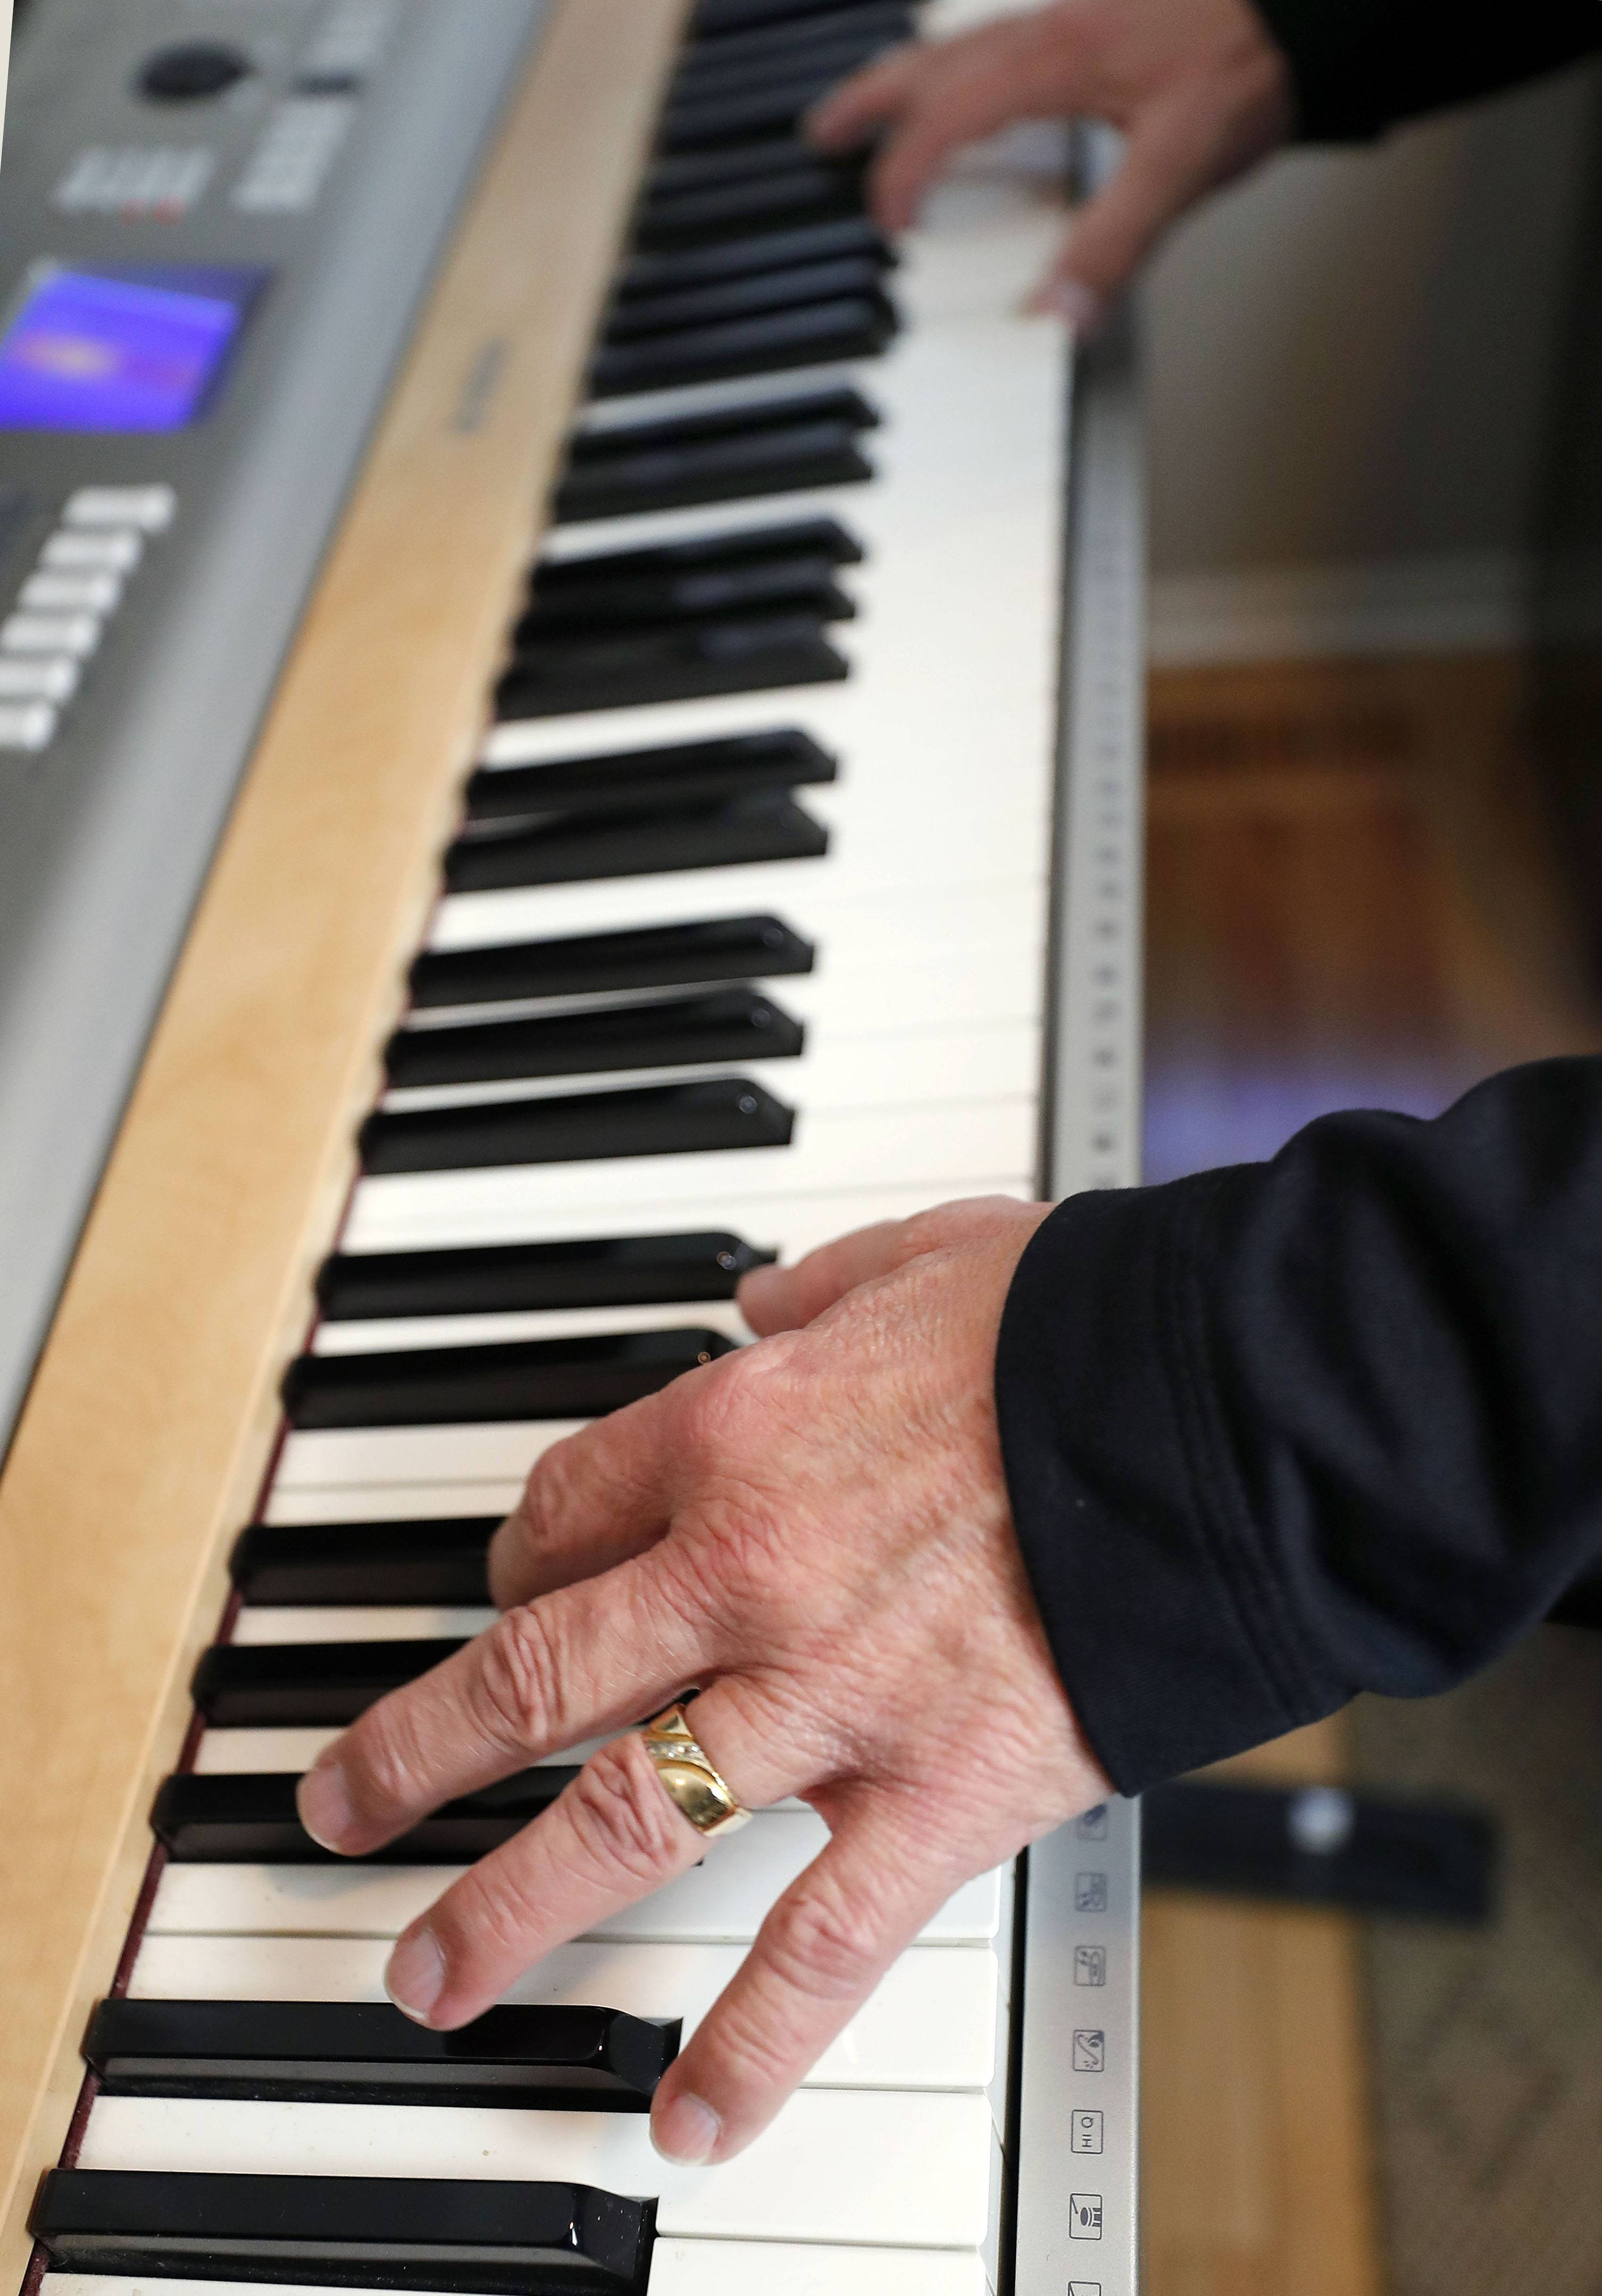 A piano player has to be flexible and learn how to get along with people, says Wayne Richards of Streamwood, who celebrates his 50th anniversary in show business with a concert Sunday night in Skokie.